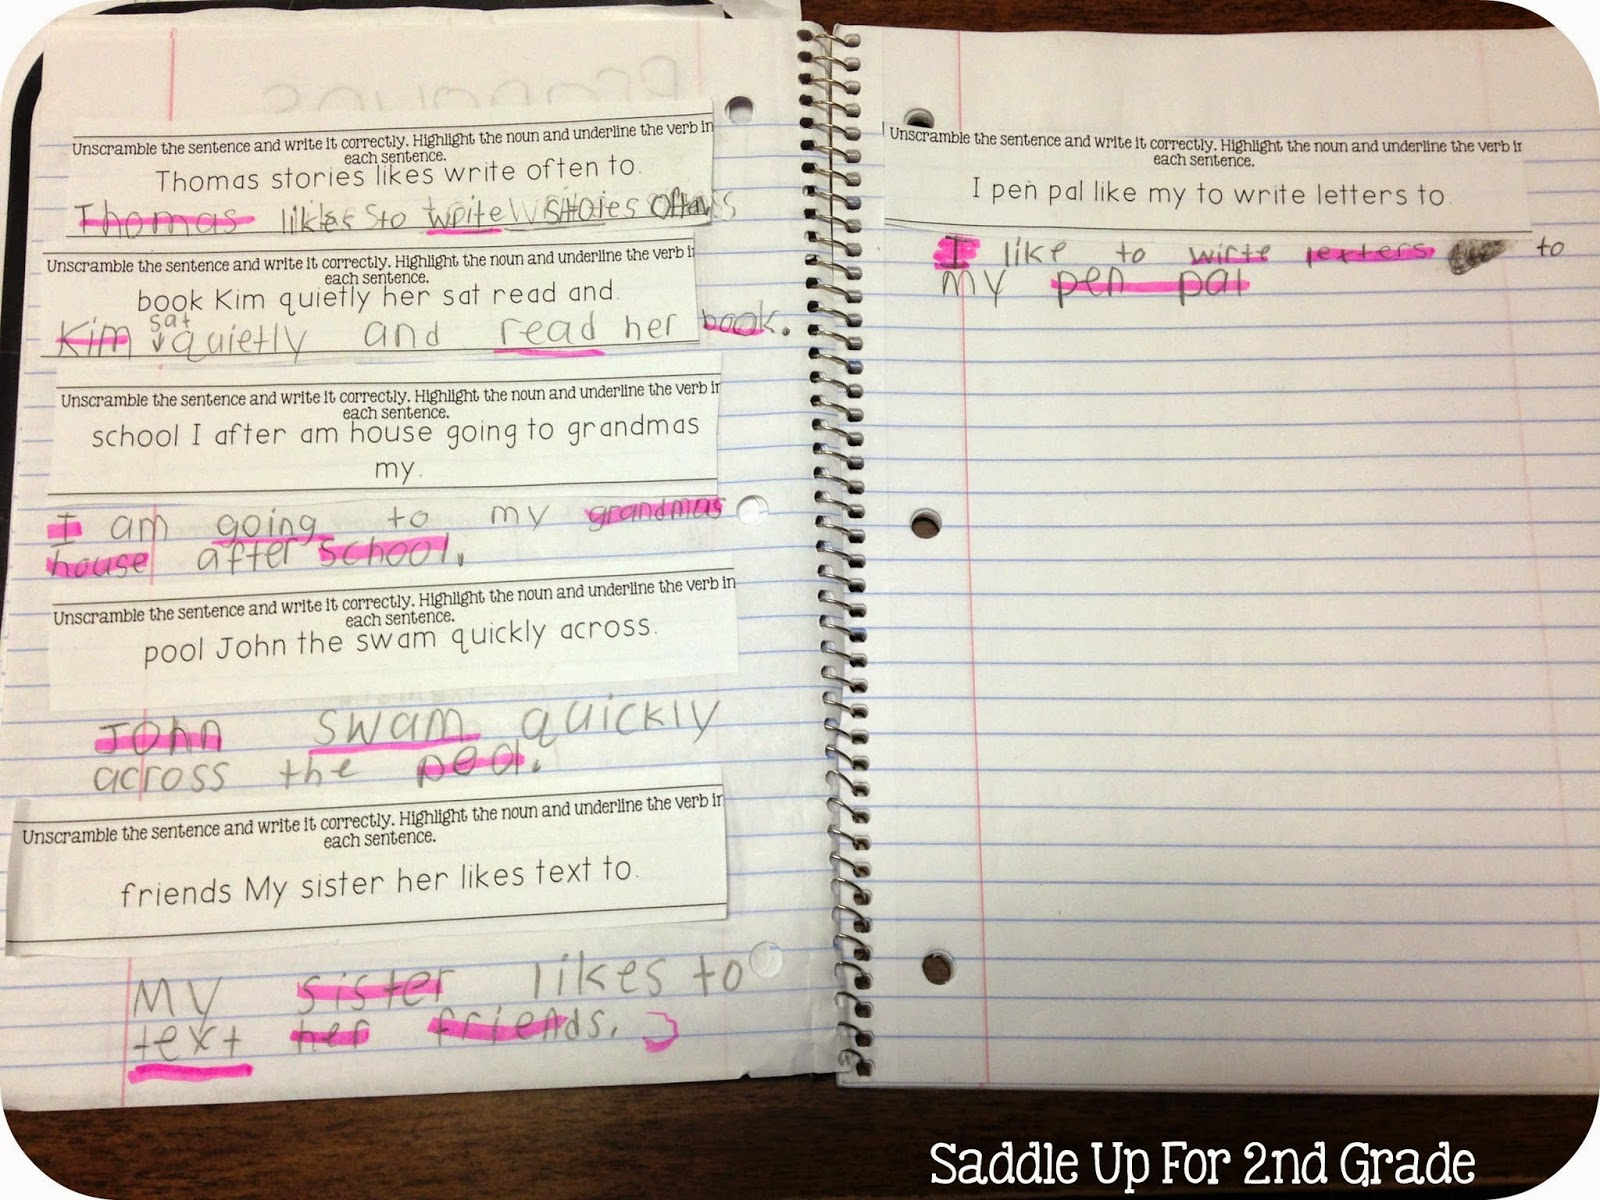 Unscrambling Verb Sentences FREEBIE from Saddle Up For 2nd Grade